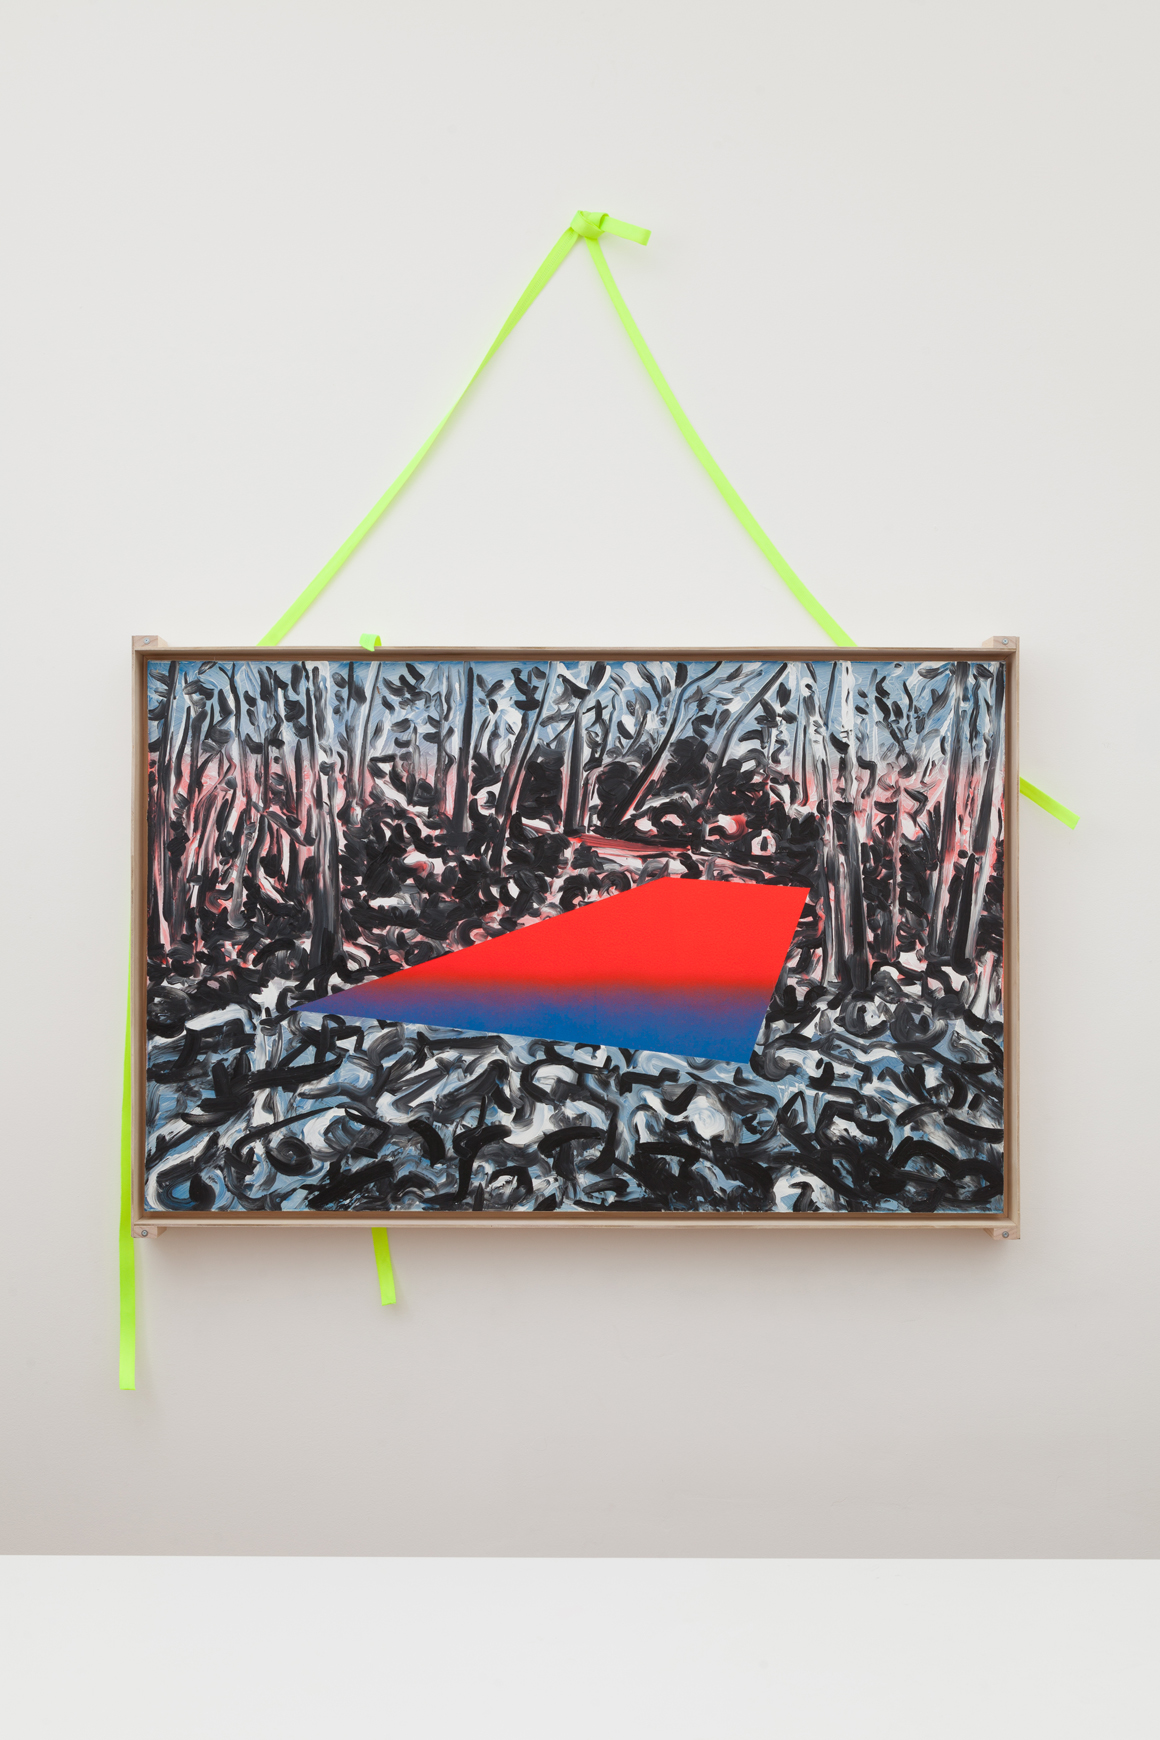 "<p><em>39°44'15.9""N 106°08'27.2""W</em><span class='media'>Oil on DayGlo with transportation crate and straps</span>36 x 56 in  (91.4 x 142.2 cm)<br>2015<br><a class='inquire' href='mailto:info@gildargallery.com?subject=Artwork Inquiry JCOC0013&body=I am interested in finding out more about 39°44'15.9""N 106°08'27.2""W by Joey Cocciardi'>Inquire</a></p>"